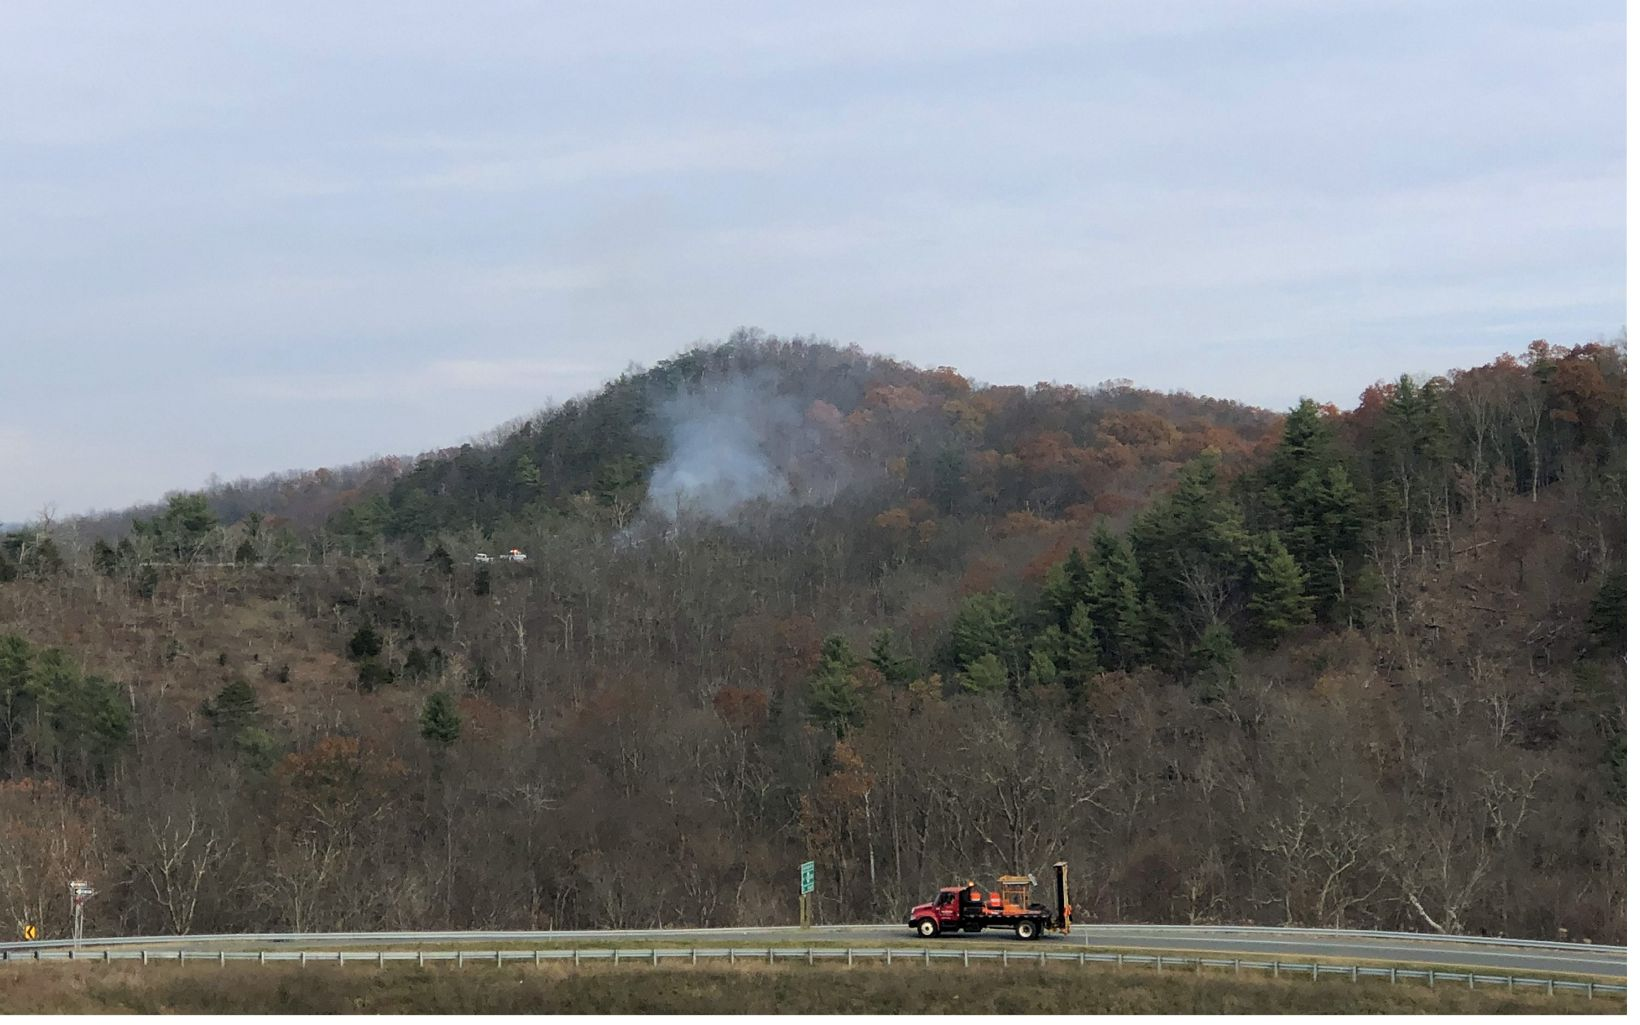 Smoke from the burn unit is visible from TNC's public viewing station during the Sideling Hill Creek controlled burn, November 21, 2019.